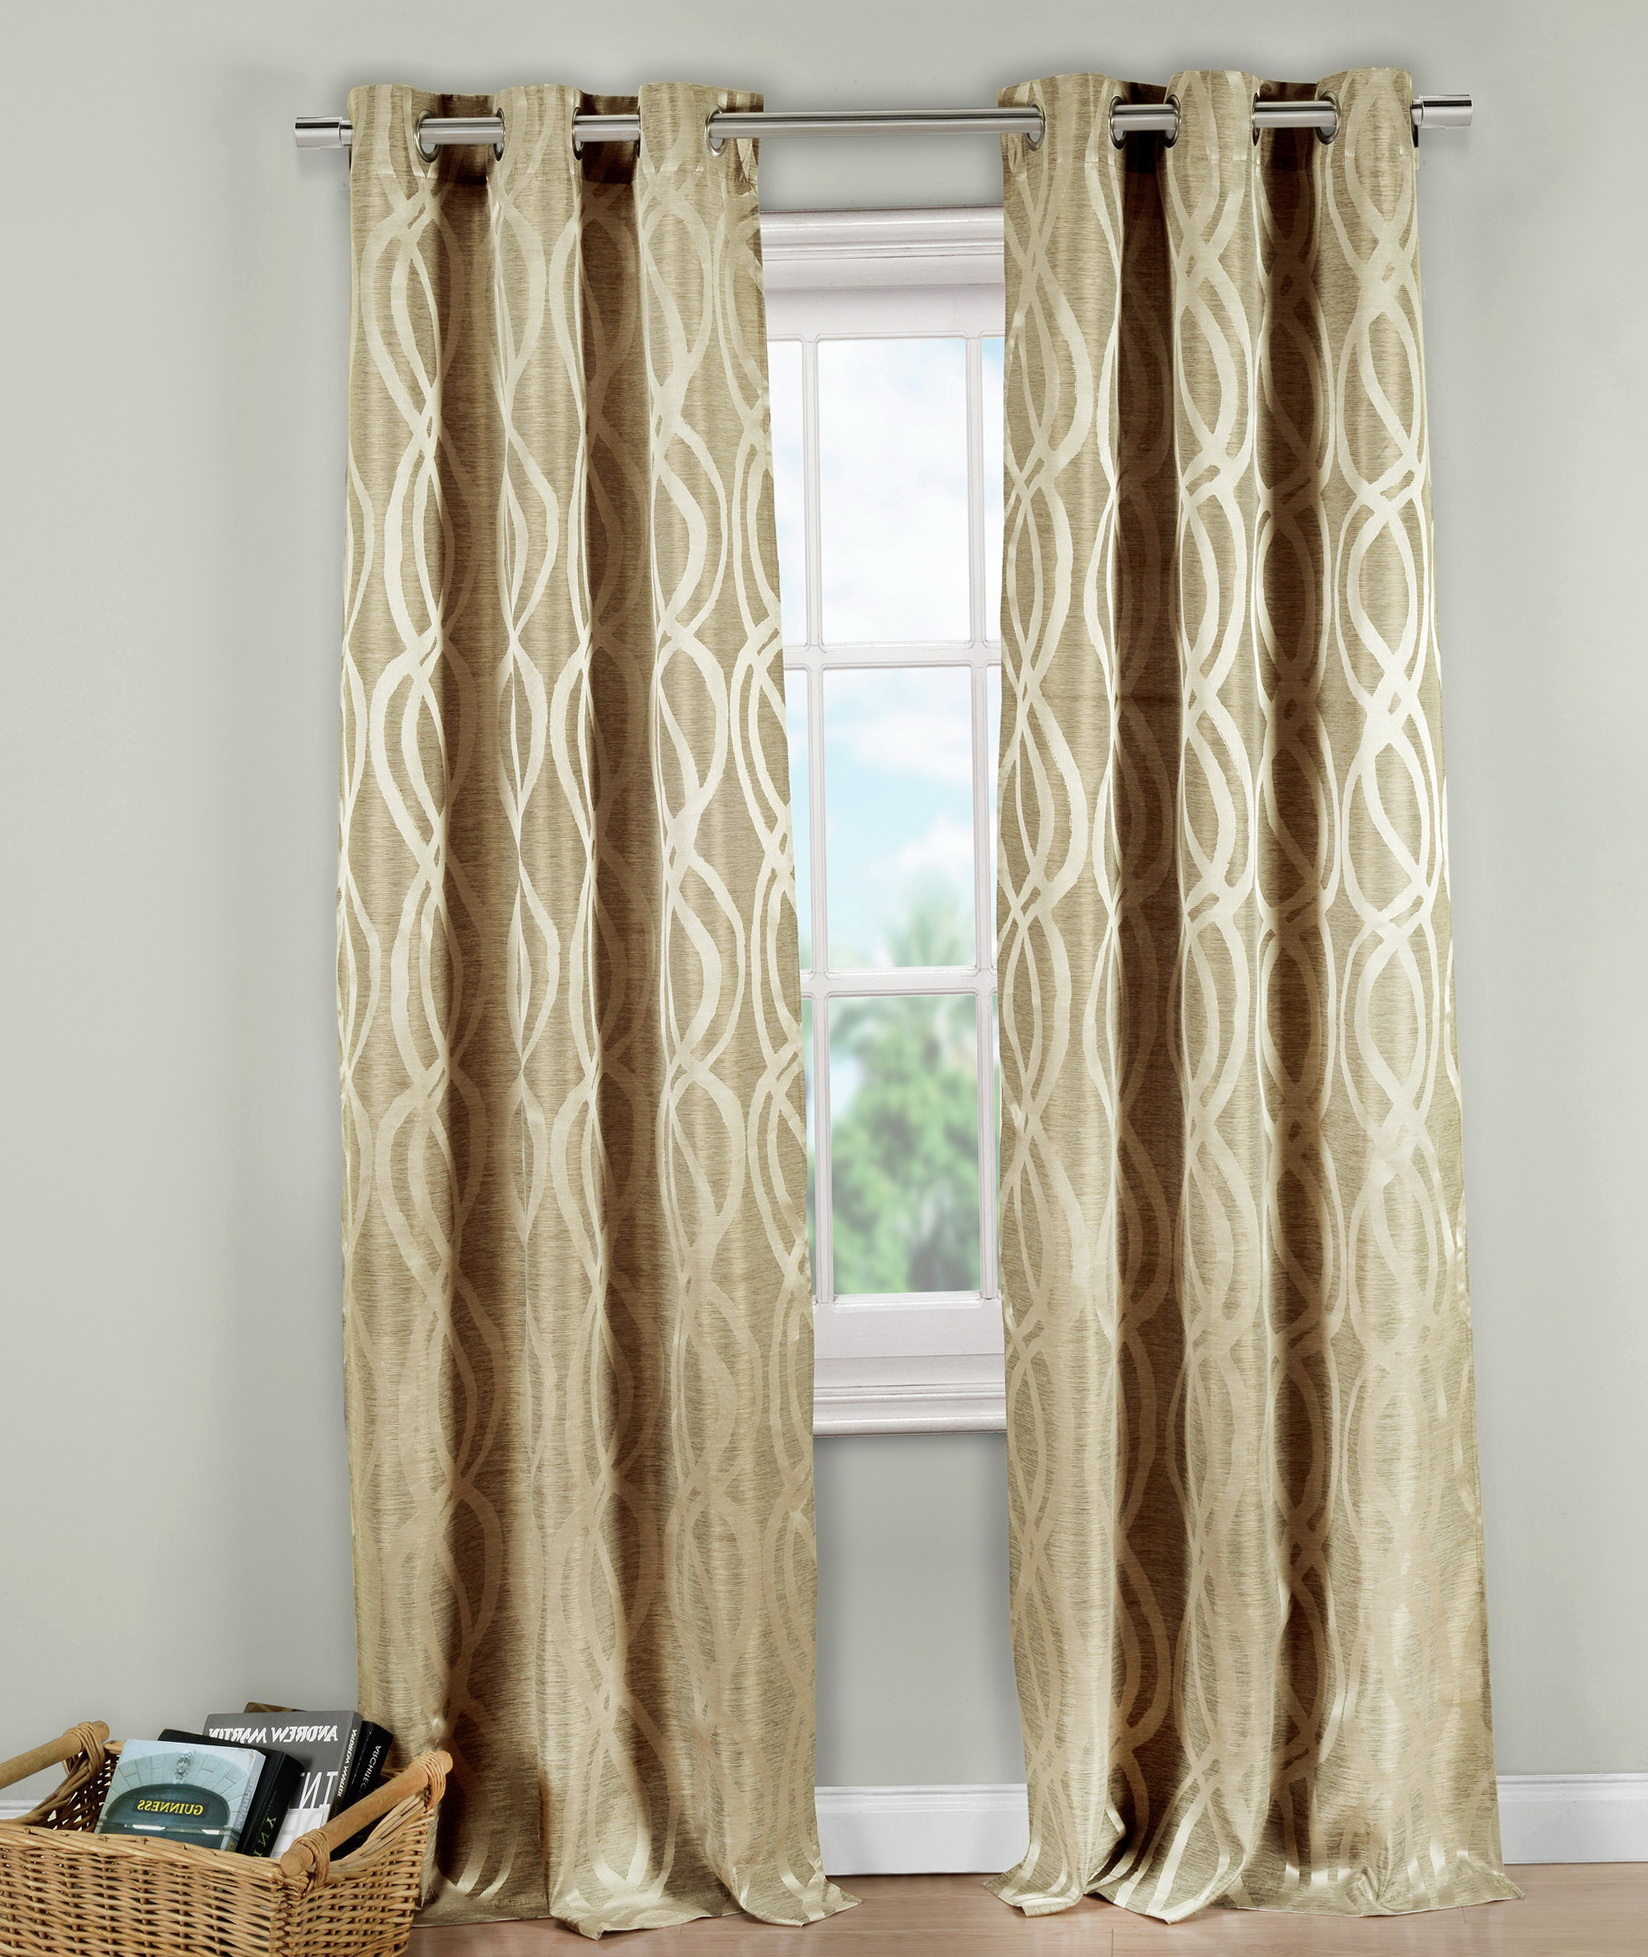 lengths image curtains that pic sizes size windows full for curtain ofndard of ideas windowndardstandard great standard